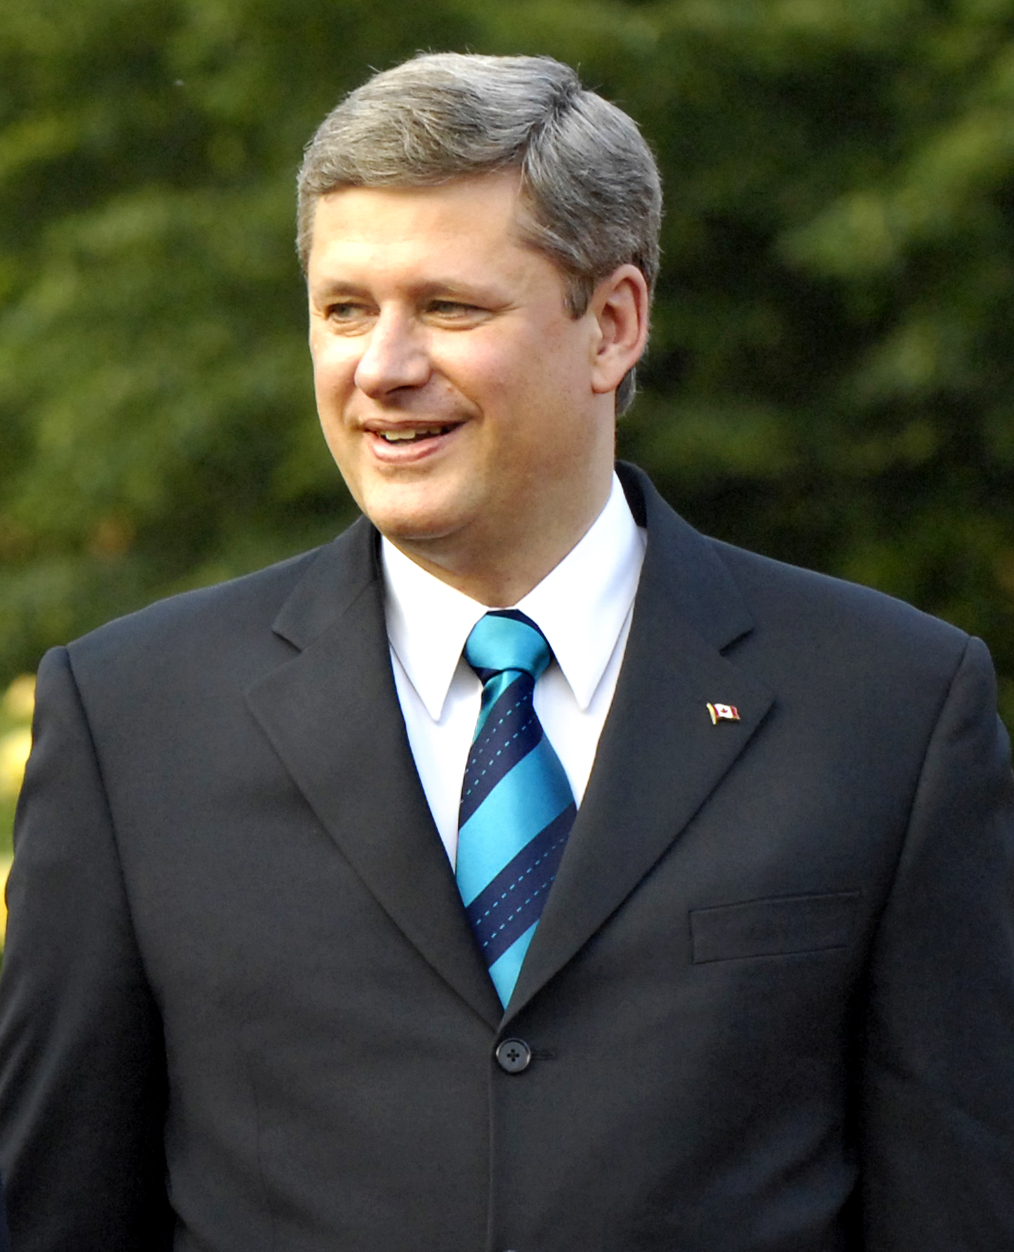 canadian federal election 2006 wikipedia